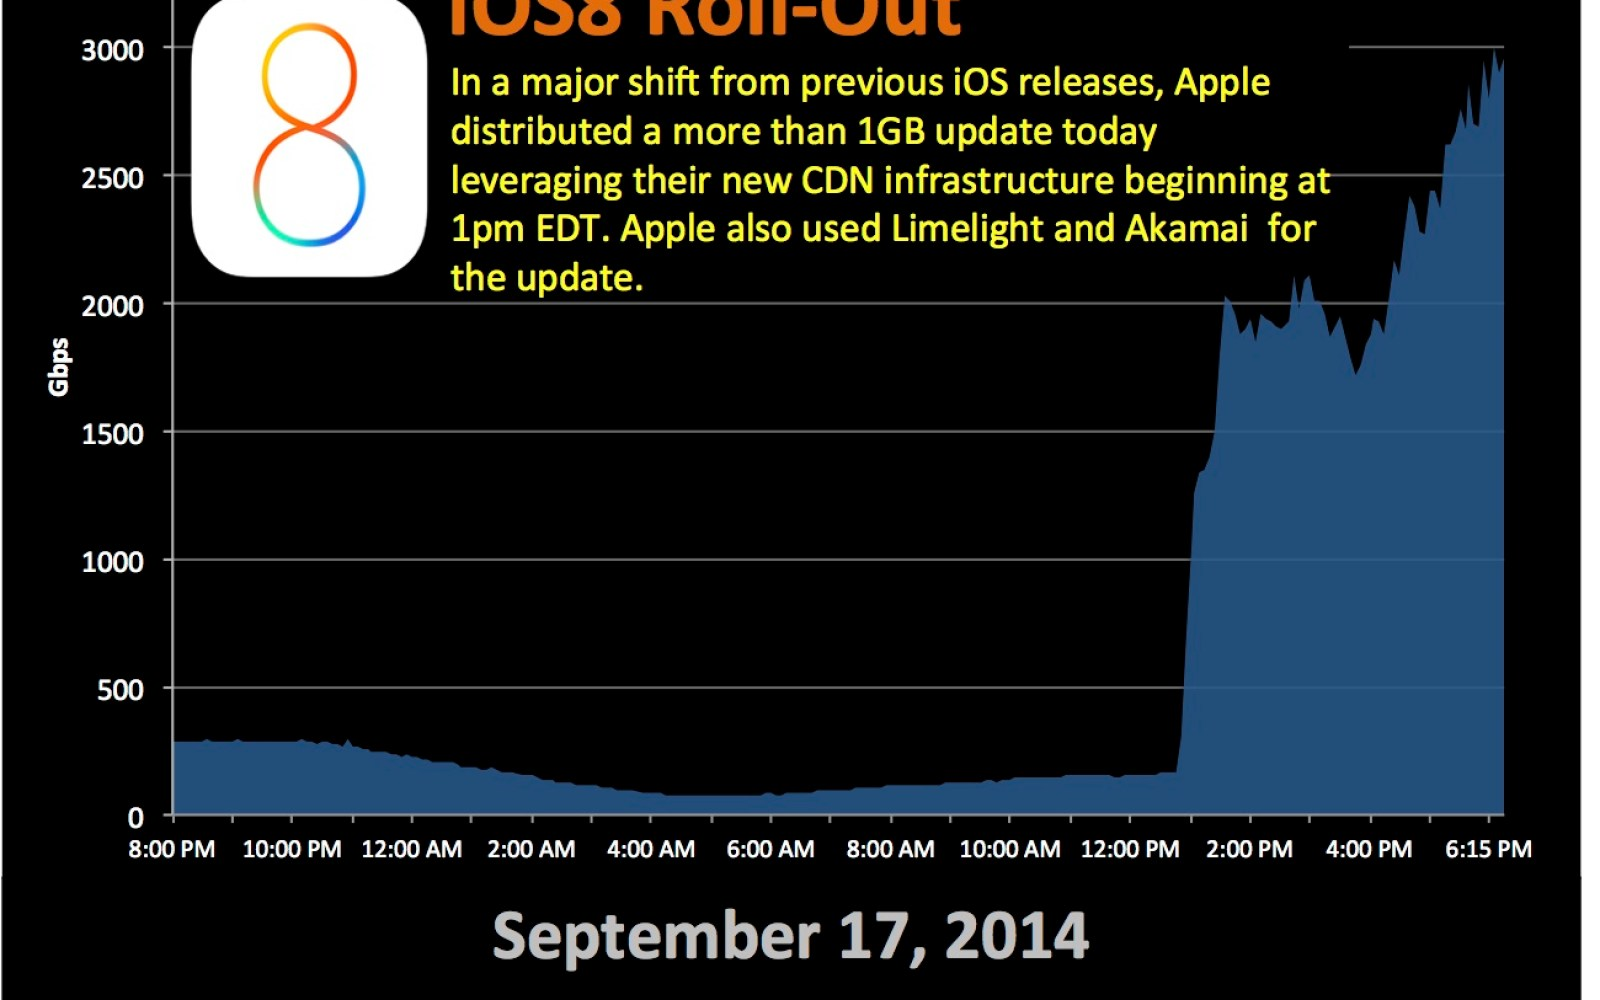 Apple for the first time used its own CDN to deliver iOS 8 upgrade